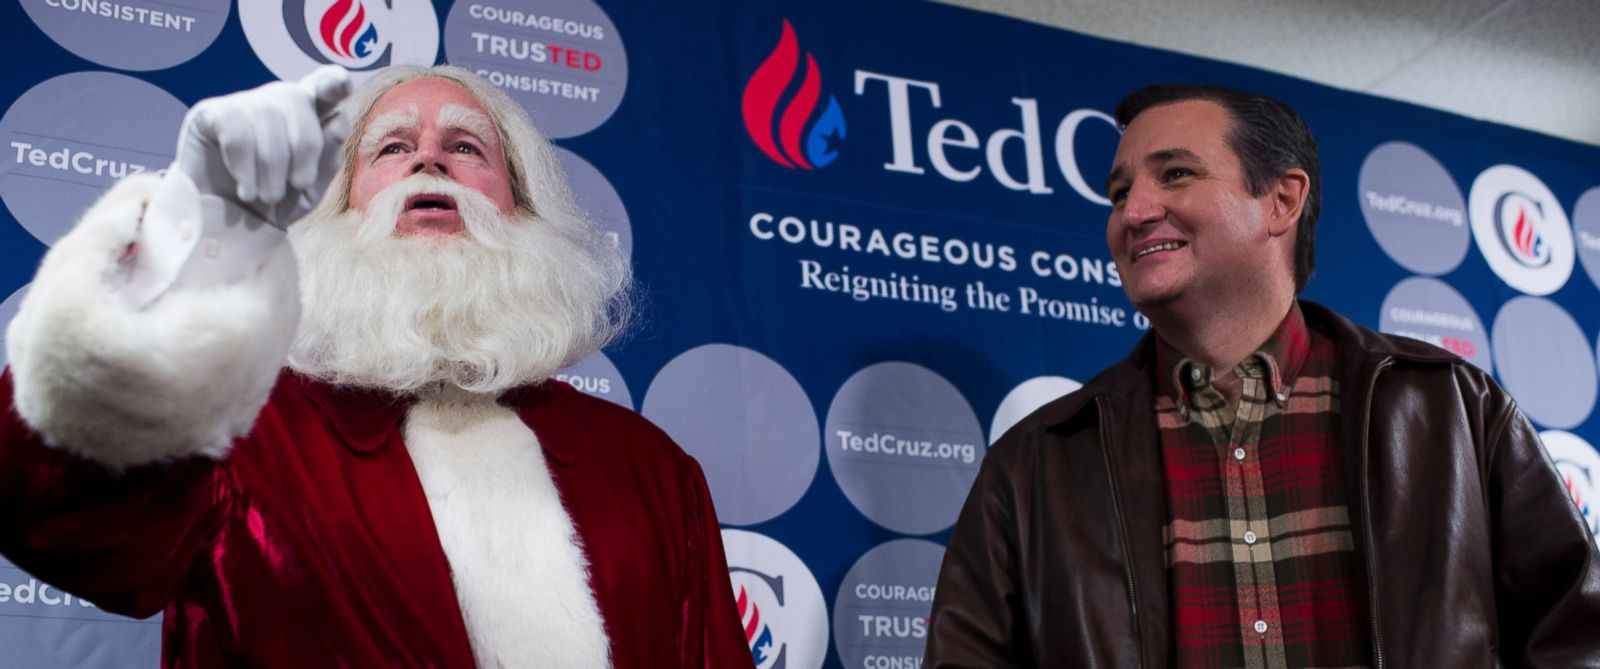 PHOTO: Santa Claus makes an appearance with Republican Presidential candidate Sen. Ted Cruz, R-Texas, during his media availability before the rally at the Life Church in Mechanicsville, Va., on Dec. 17, 2015.